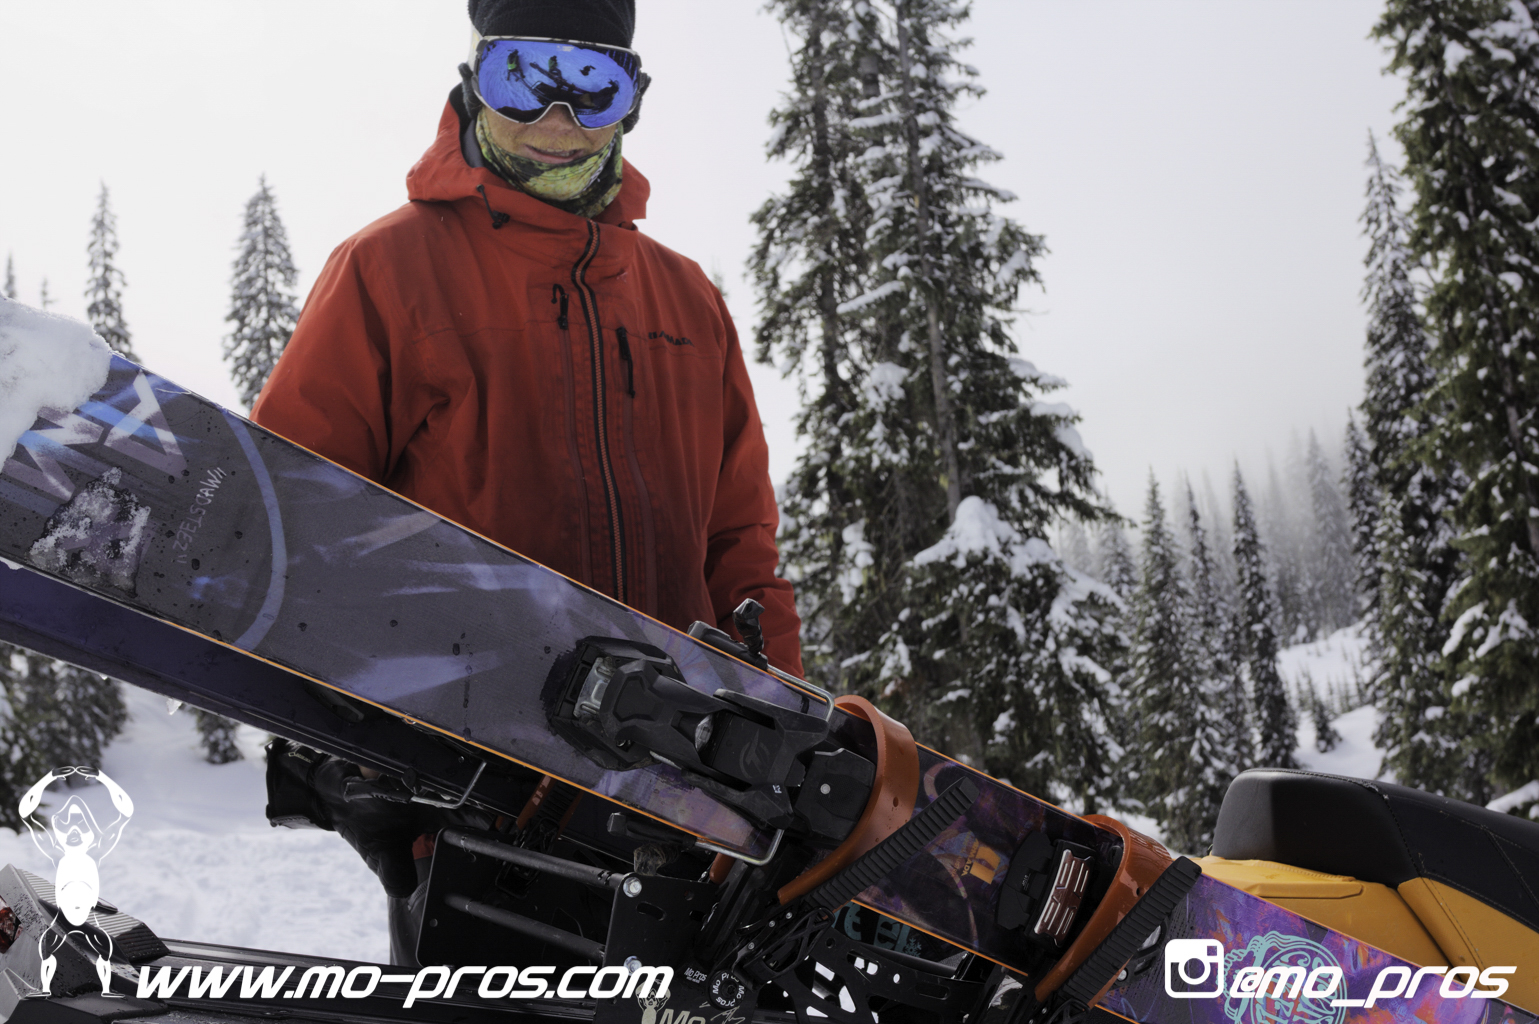 14_Backcountry _Backcountry United_Rack_Ski_Snowbike_Timbersled Rack_Tsaina Rack_CFR rack_Cheetah Factory Racing_gas Rack_Gear_Gun Rack_LinQ Snowboard Ski_Snowboard rack_snowboard_Snowboarding_snowmo.jpg